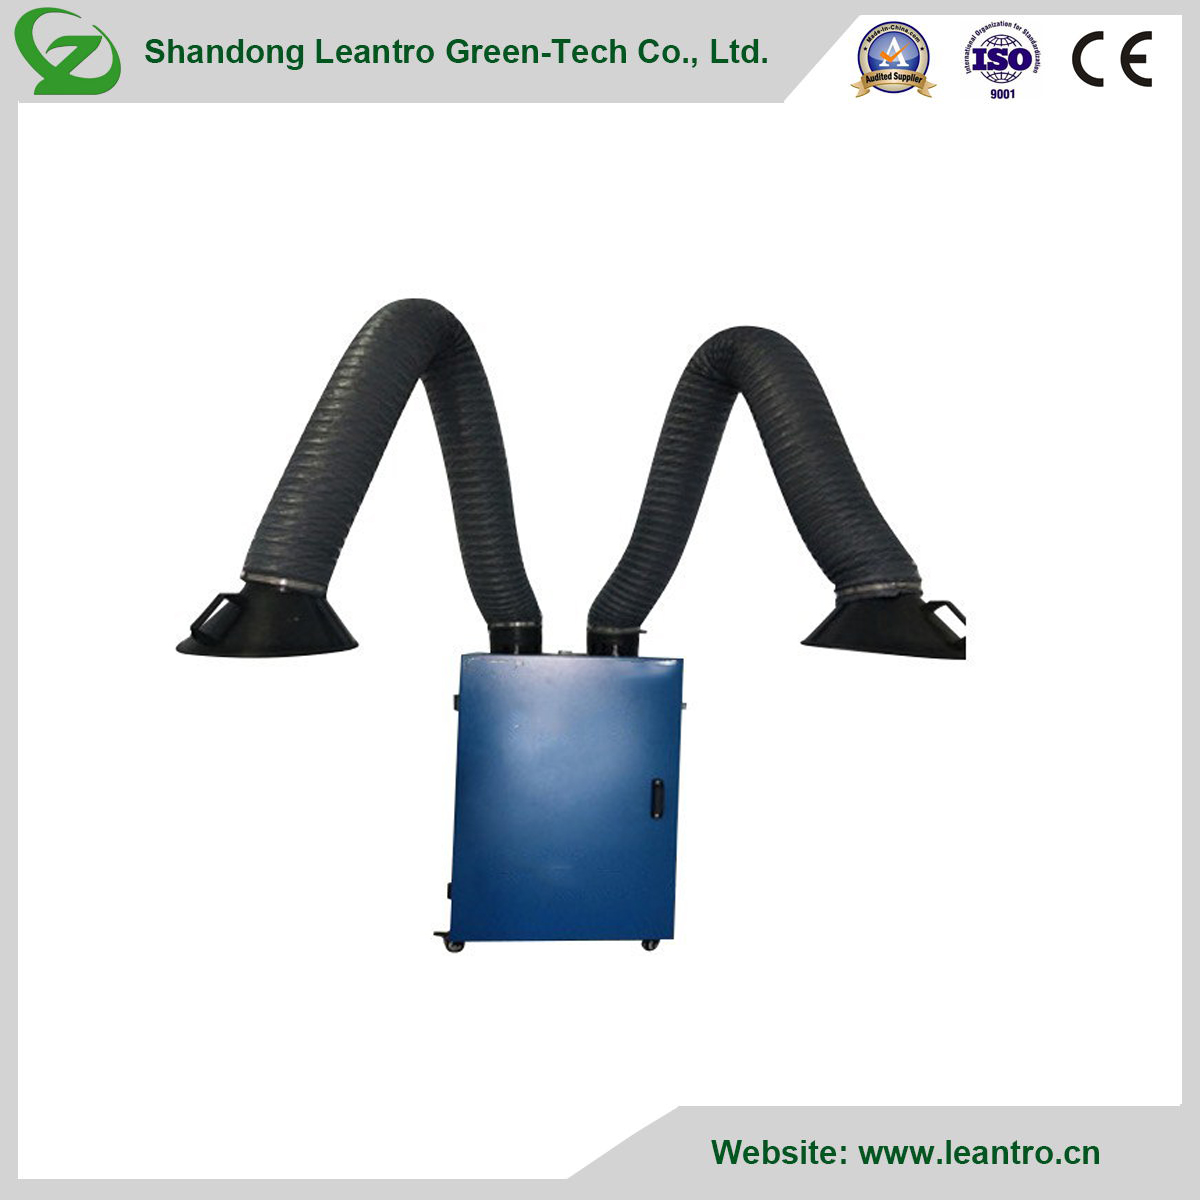 High Quality Clean Fume Extractor Systems of Welding Fume Collector